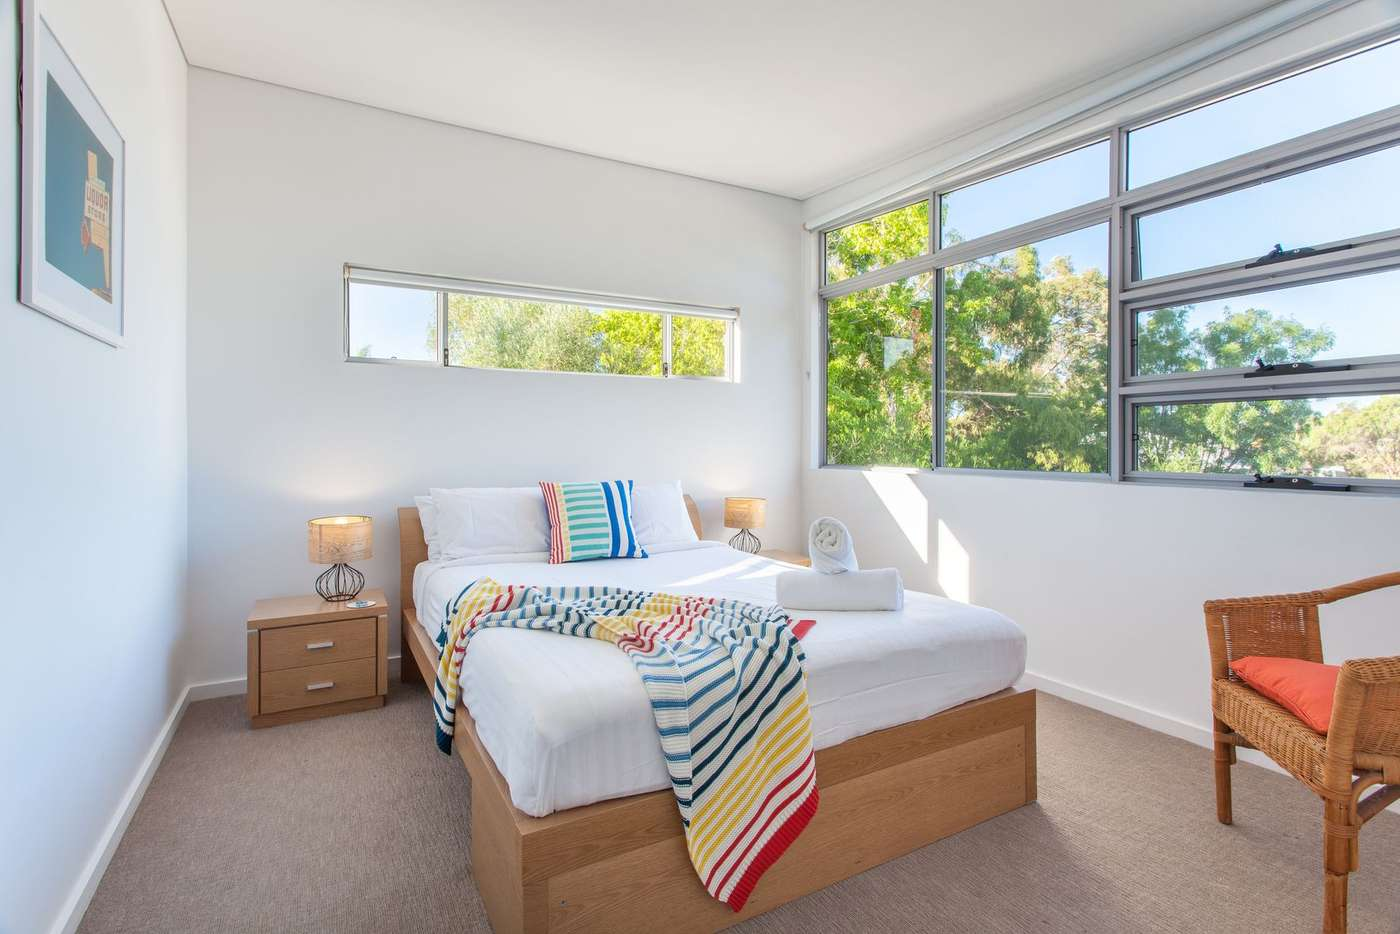 Sixth view of Homely house listing, 21 Jingarie Place, Dunsborough WA 6281